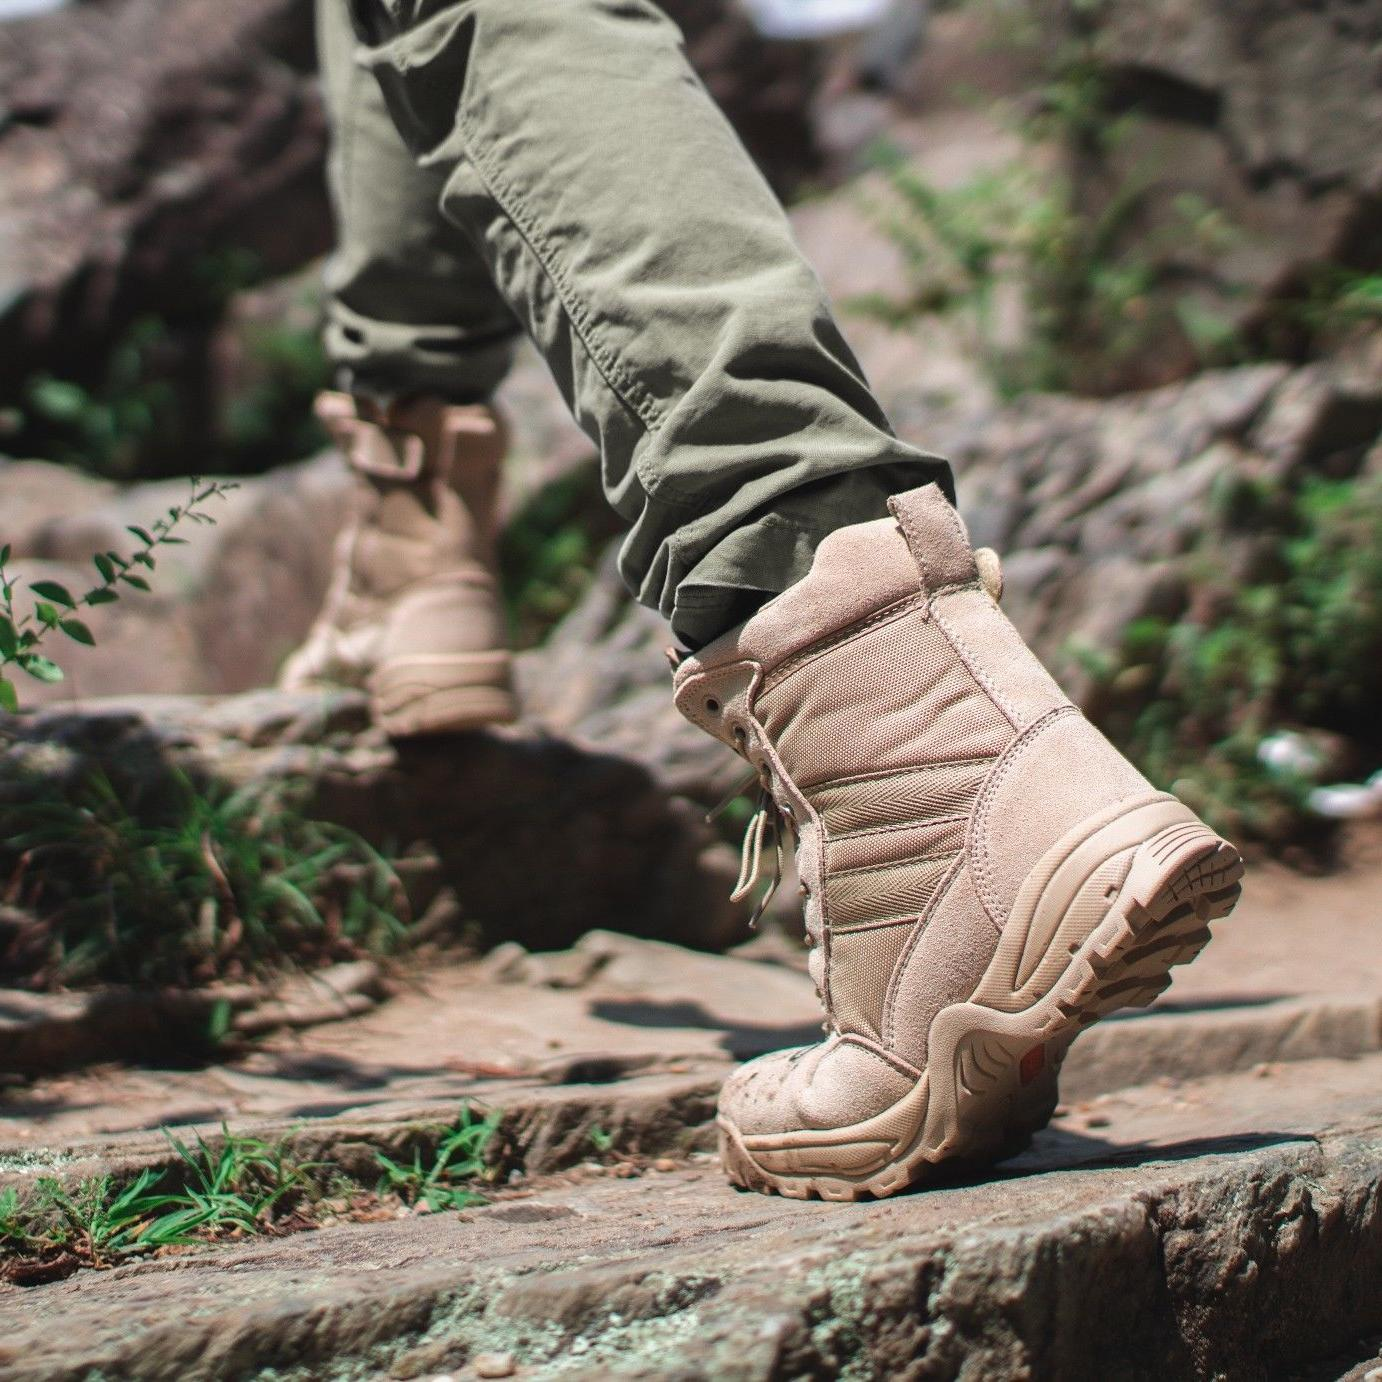 FINAL Desert Tan Military Tactical Work Boots with Zipper